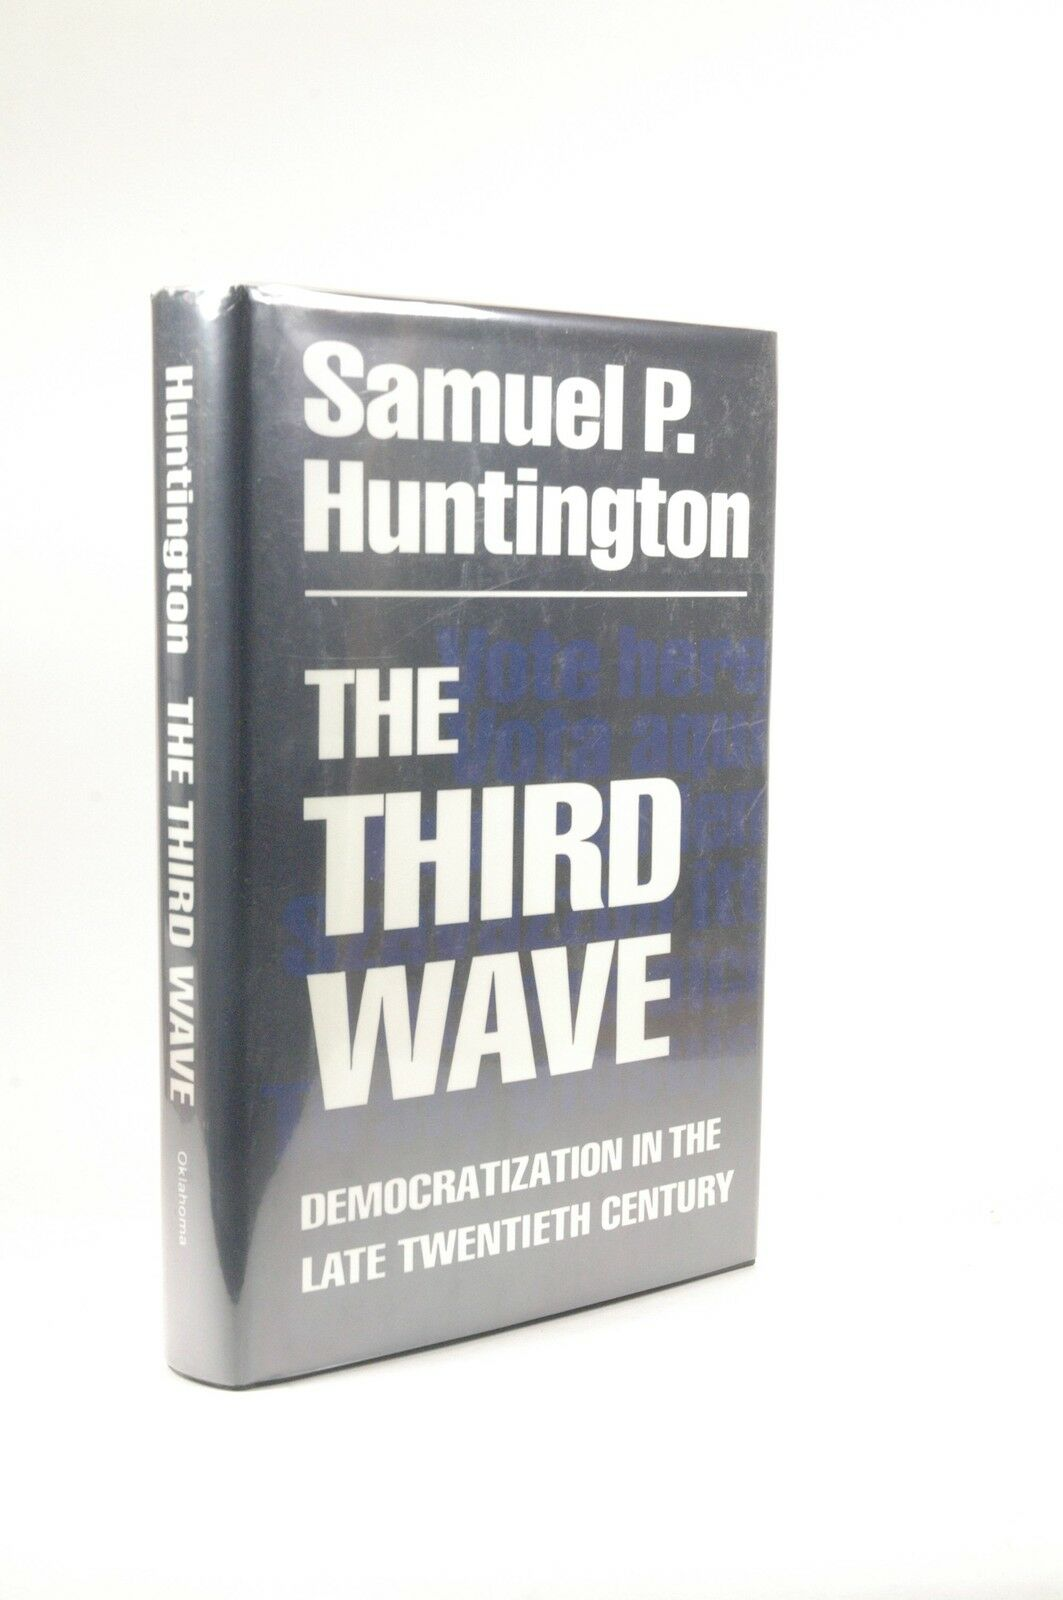 Julian J. Rothbaum Distinguished Lectures: The Third Wave : Democratization  in the Late 20th Century Vol. 4 by Samuel P. Huntington (1991, Hardcover) |  eBay